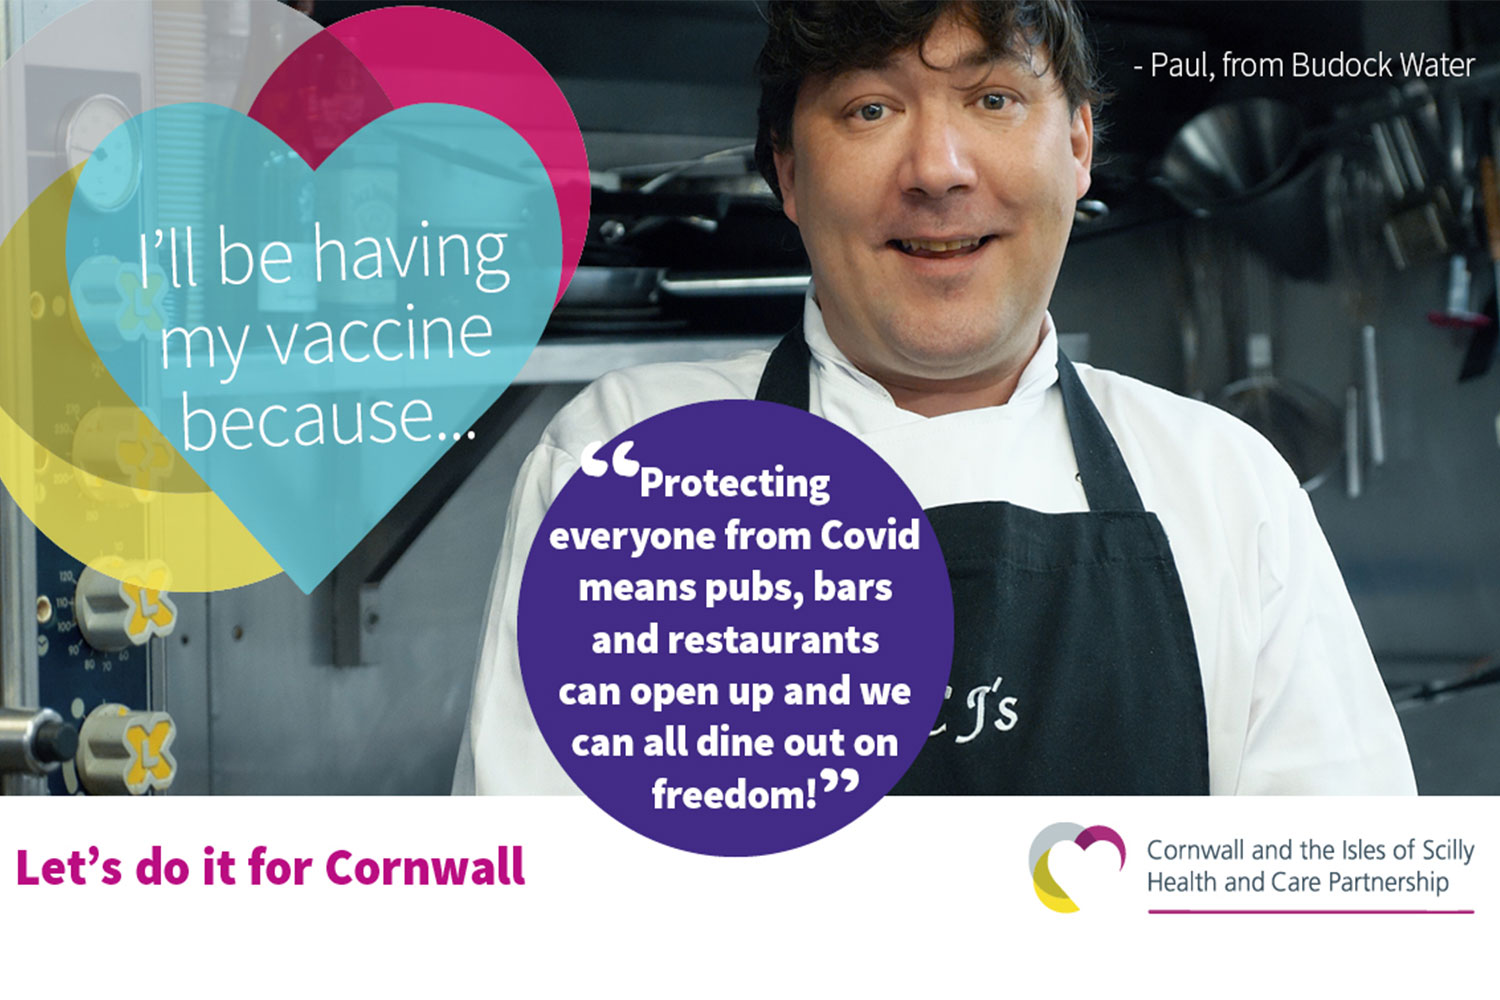 Let's do it for Cornwall. I'll be having my vaccine because protecting everyone from COVID means pubs, bars and restaurants can open up and we can all dine out on freedom.